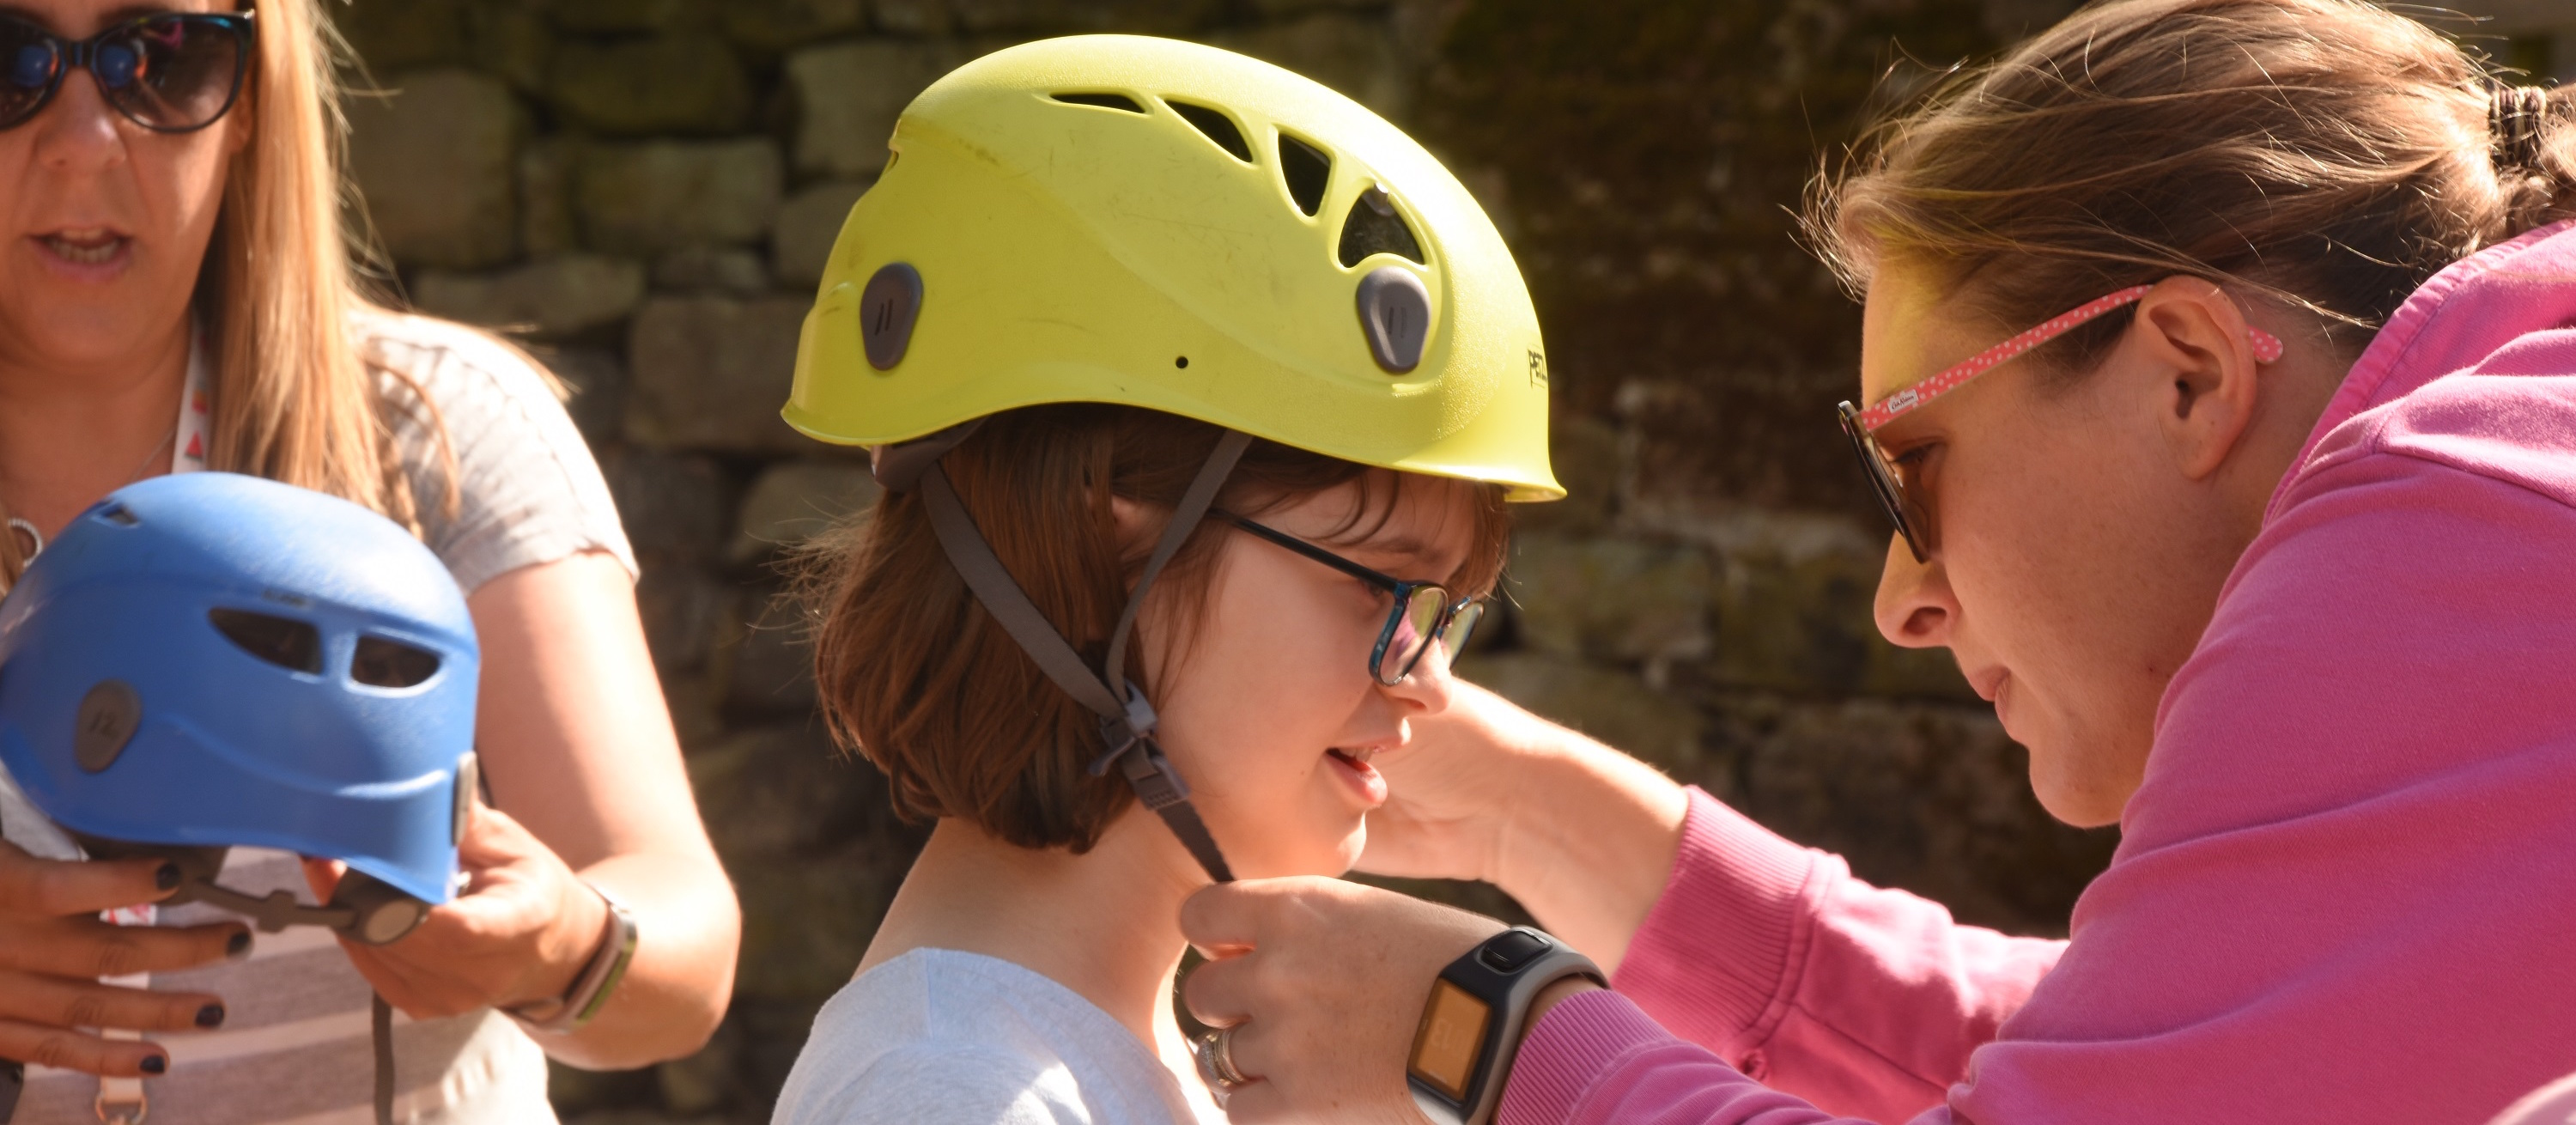 Image showing a lady helping a young girl put on a safety helmet